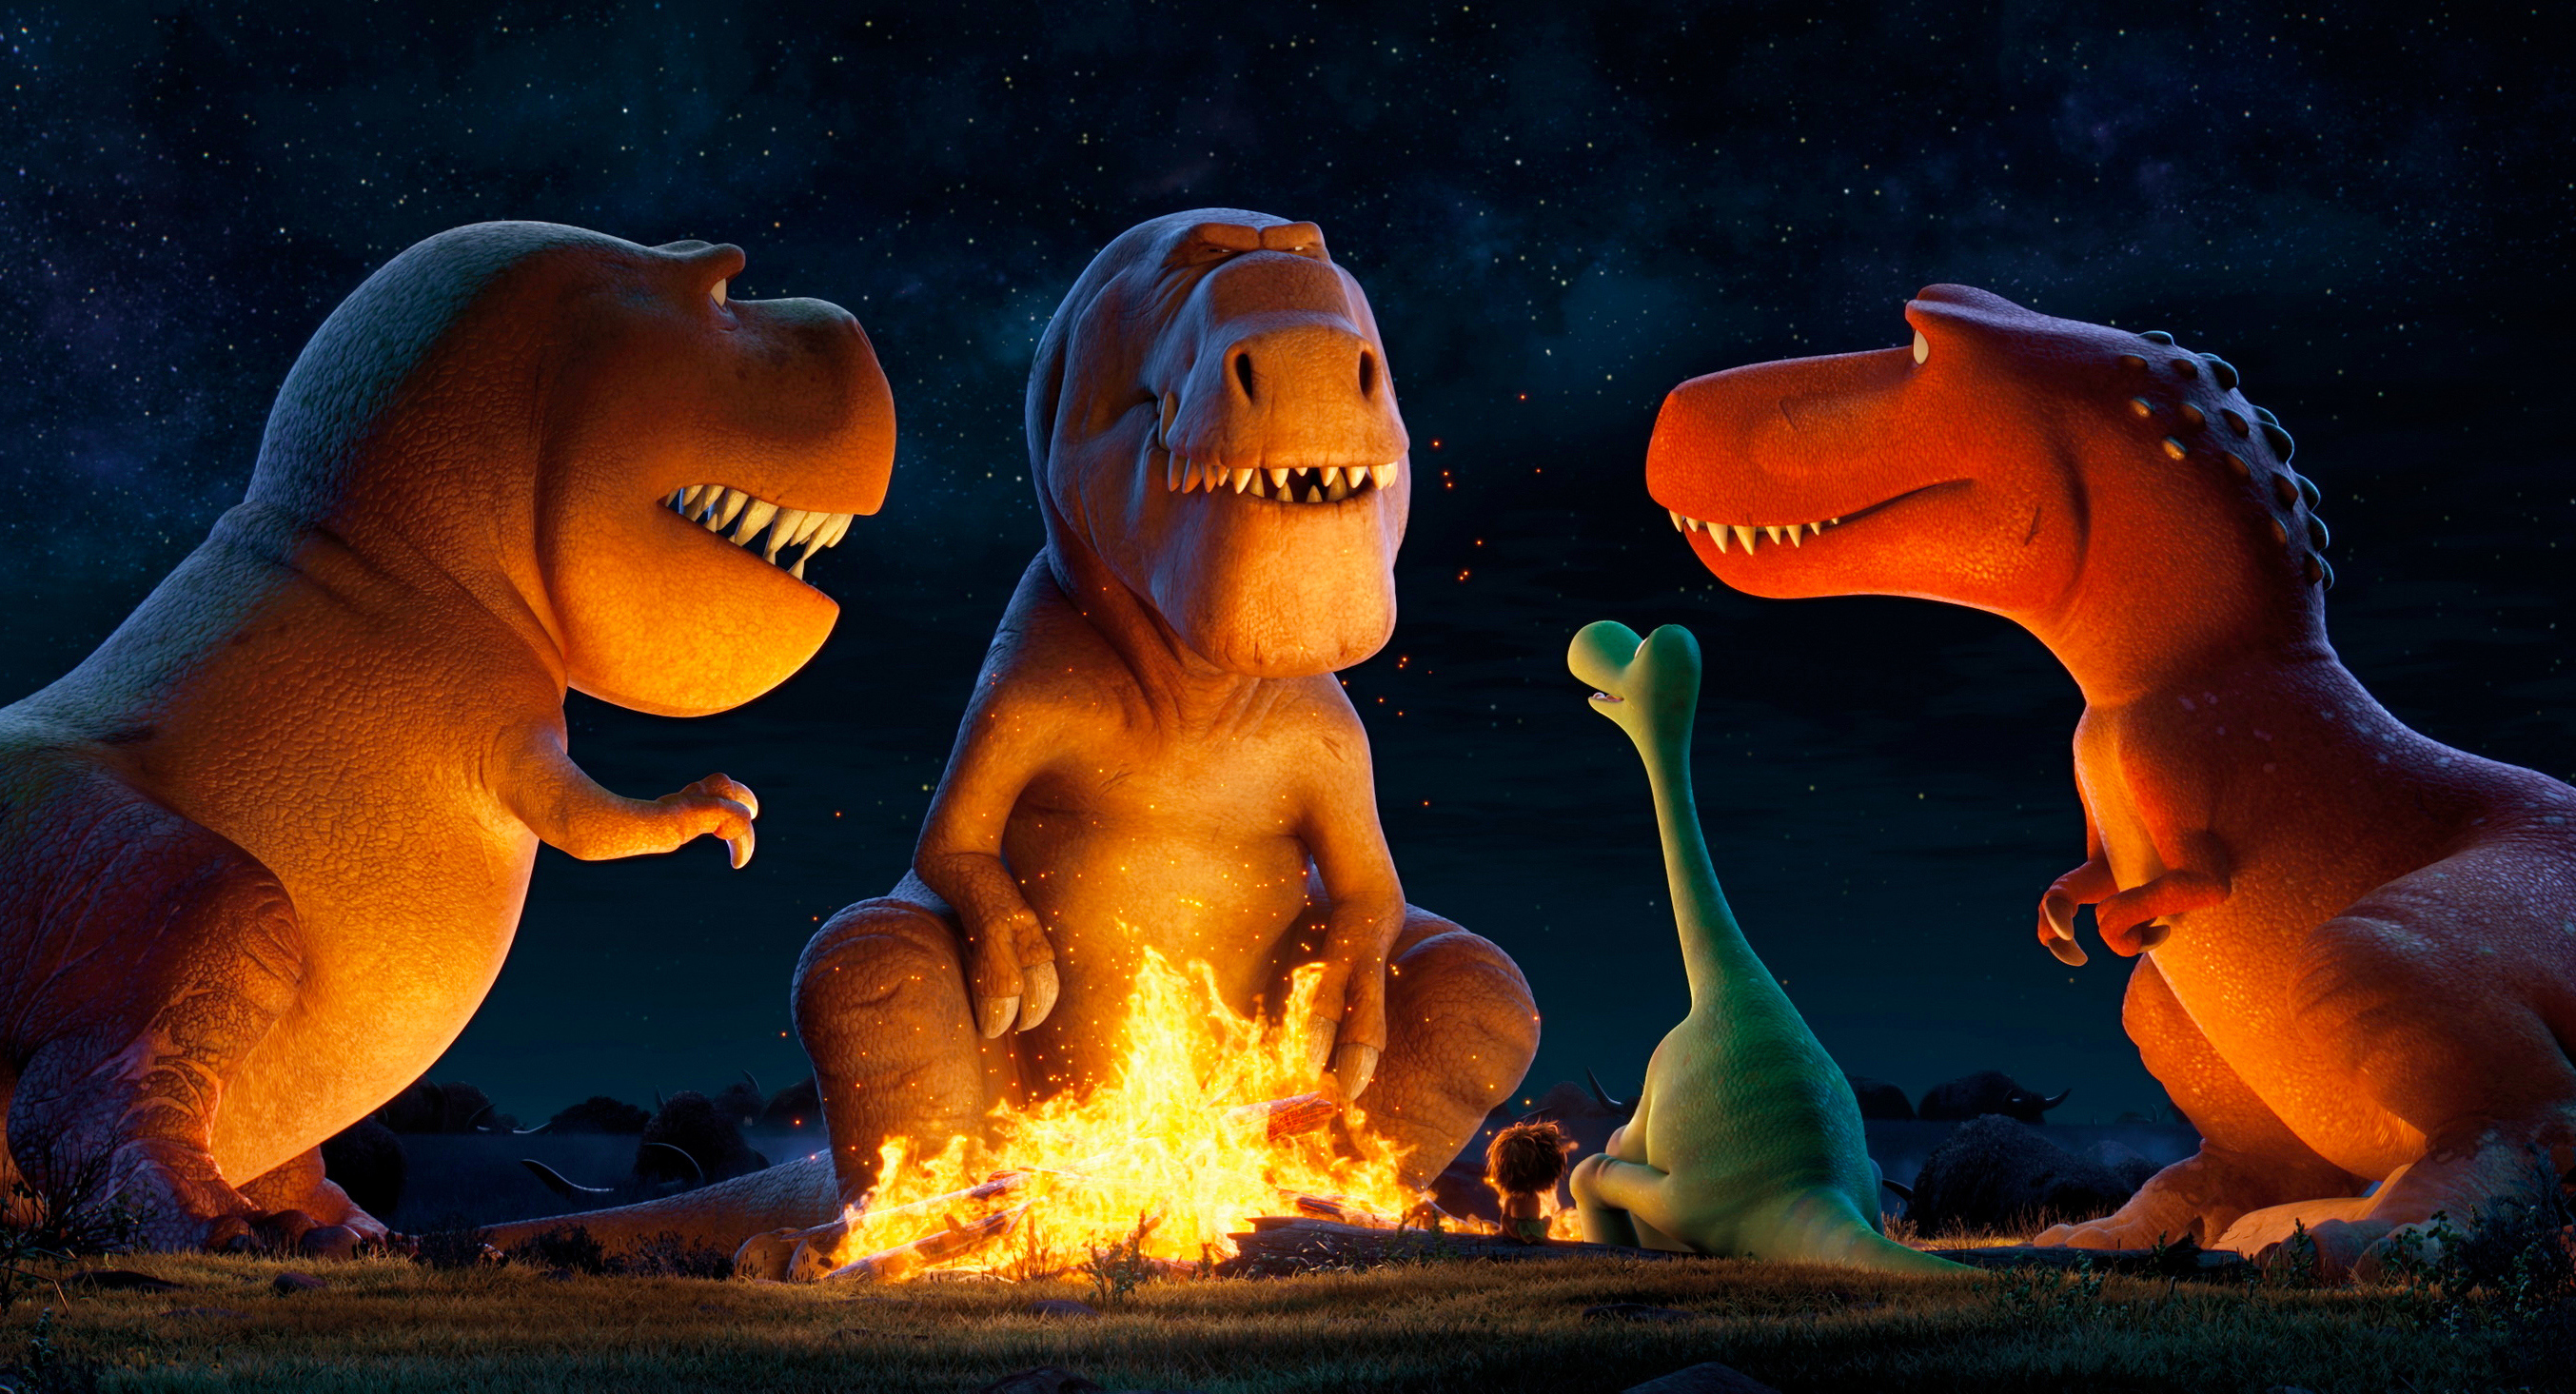 the good dinosaur full hd wallpaper and background image | 2707x1465